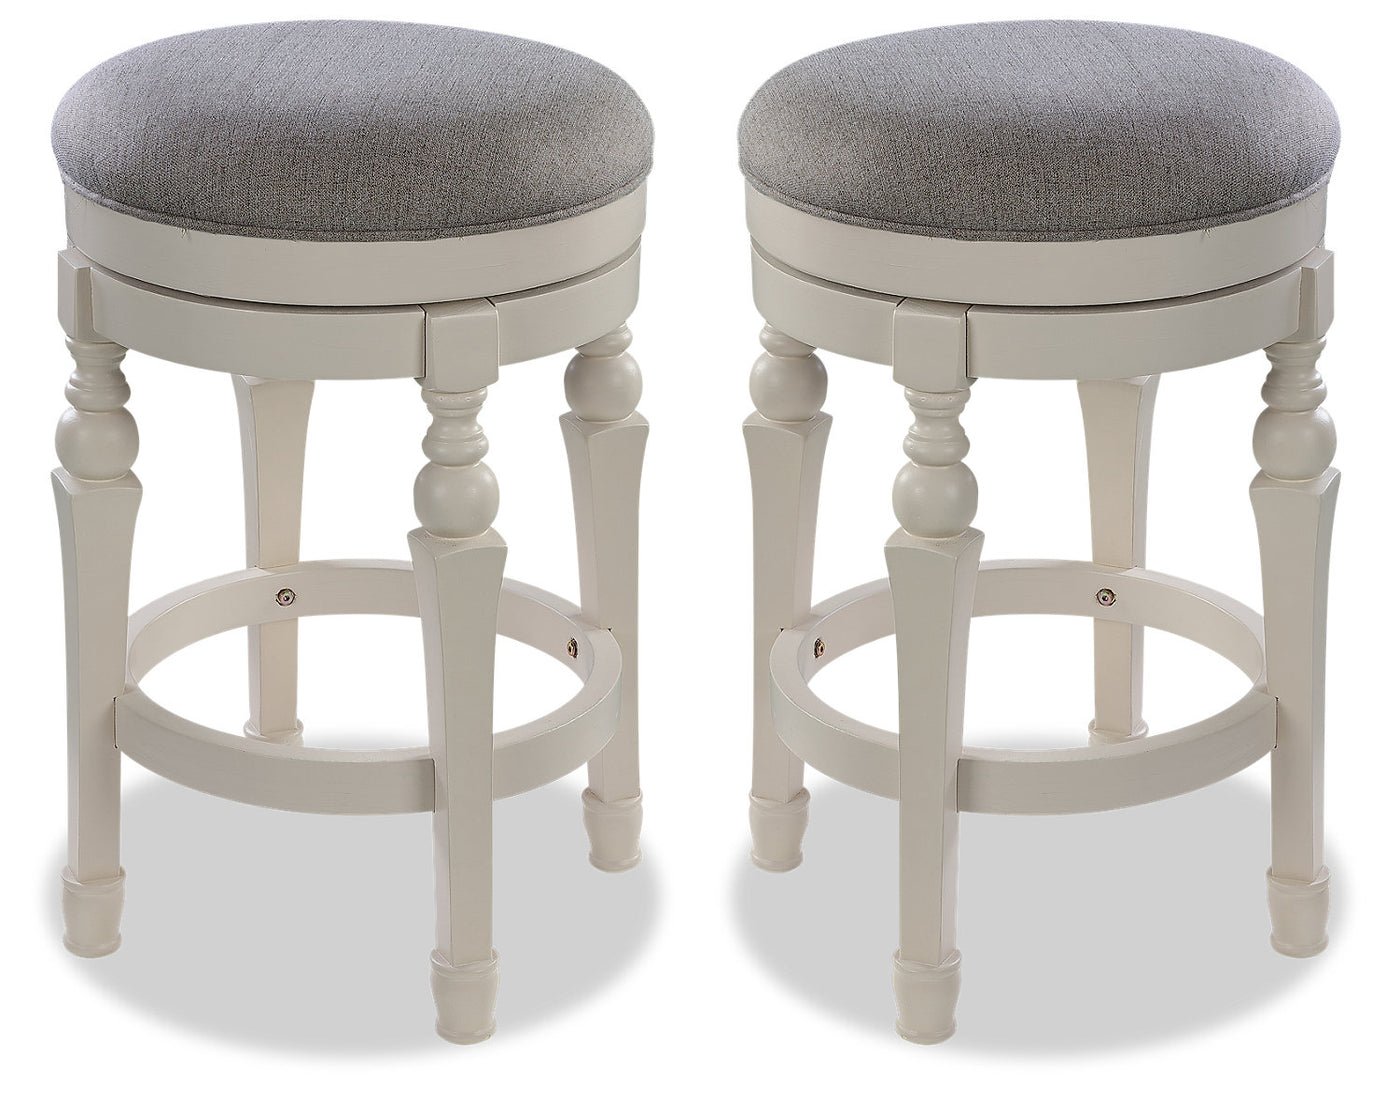 Magnificent Magnolia Counter Height Round Bar Stool Set Of 2 Gmtry Best Dining Table And Chair Ideas Images Gmtryco